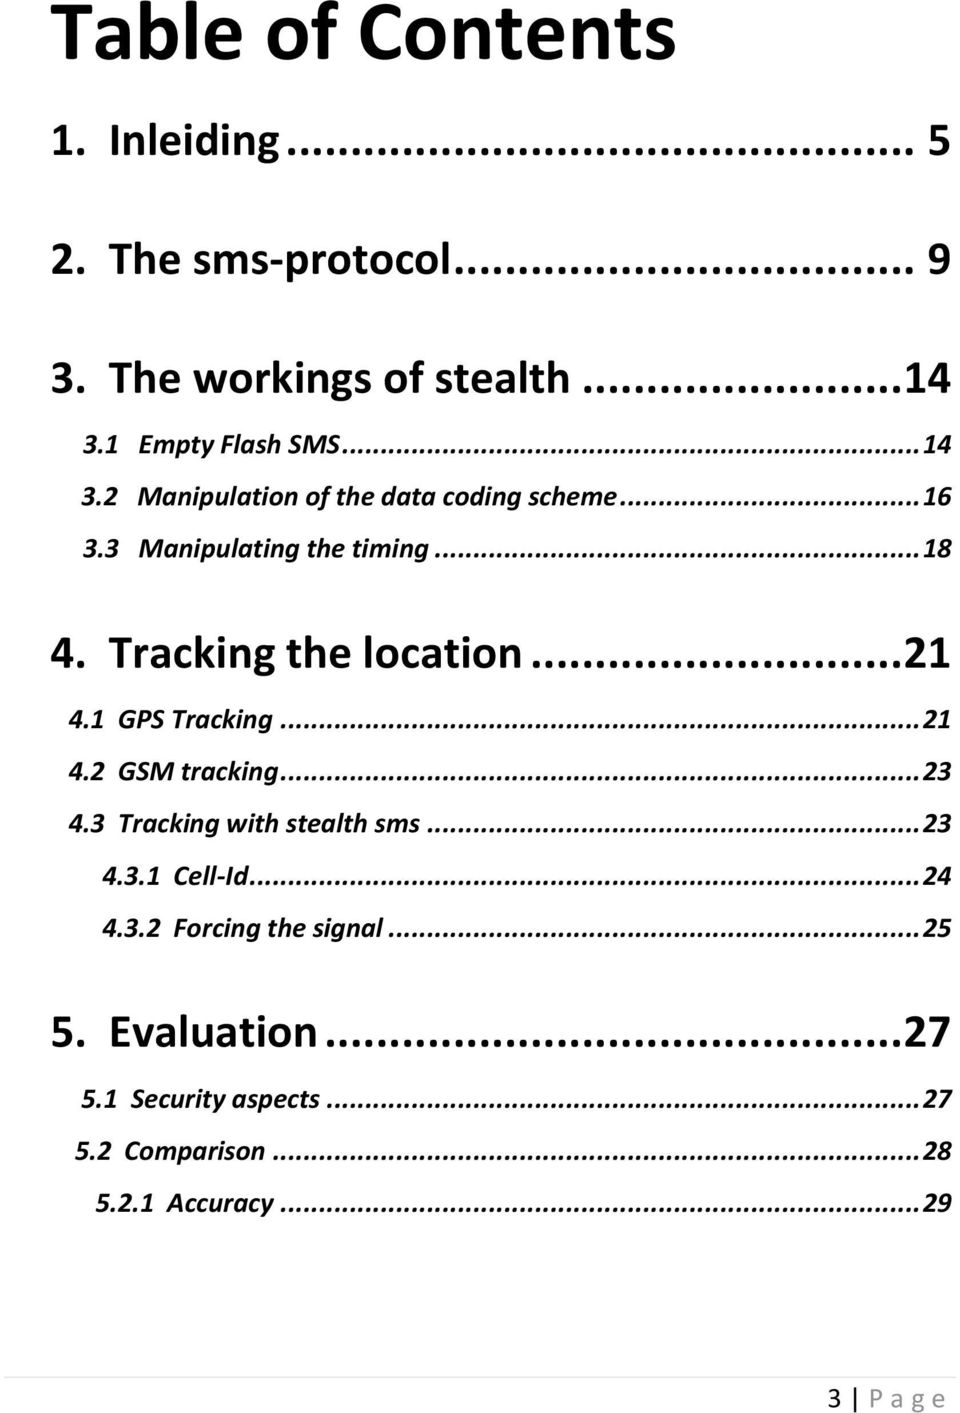 .. 21 4.1 GPS Tracking... 21 4.2 GSM tracking... 23 4.3 Tracking with stealth sms... 23 4.3.1 Cell-Id... 24 4.3.2 Forcing the signal.